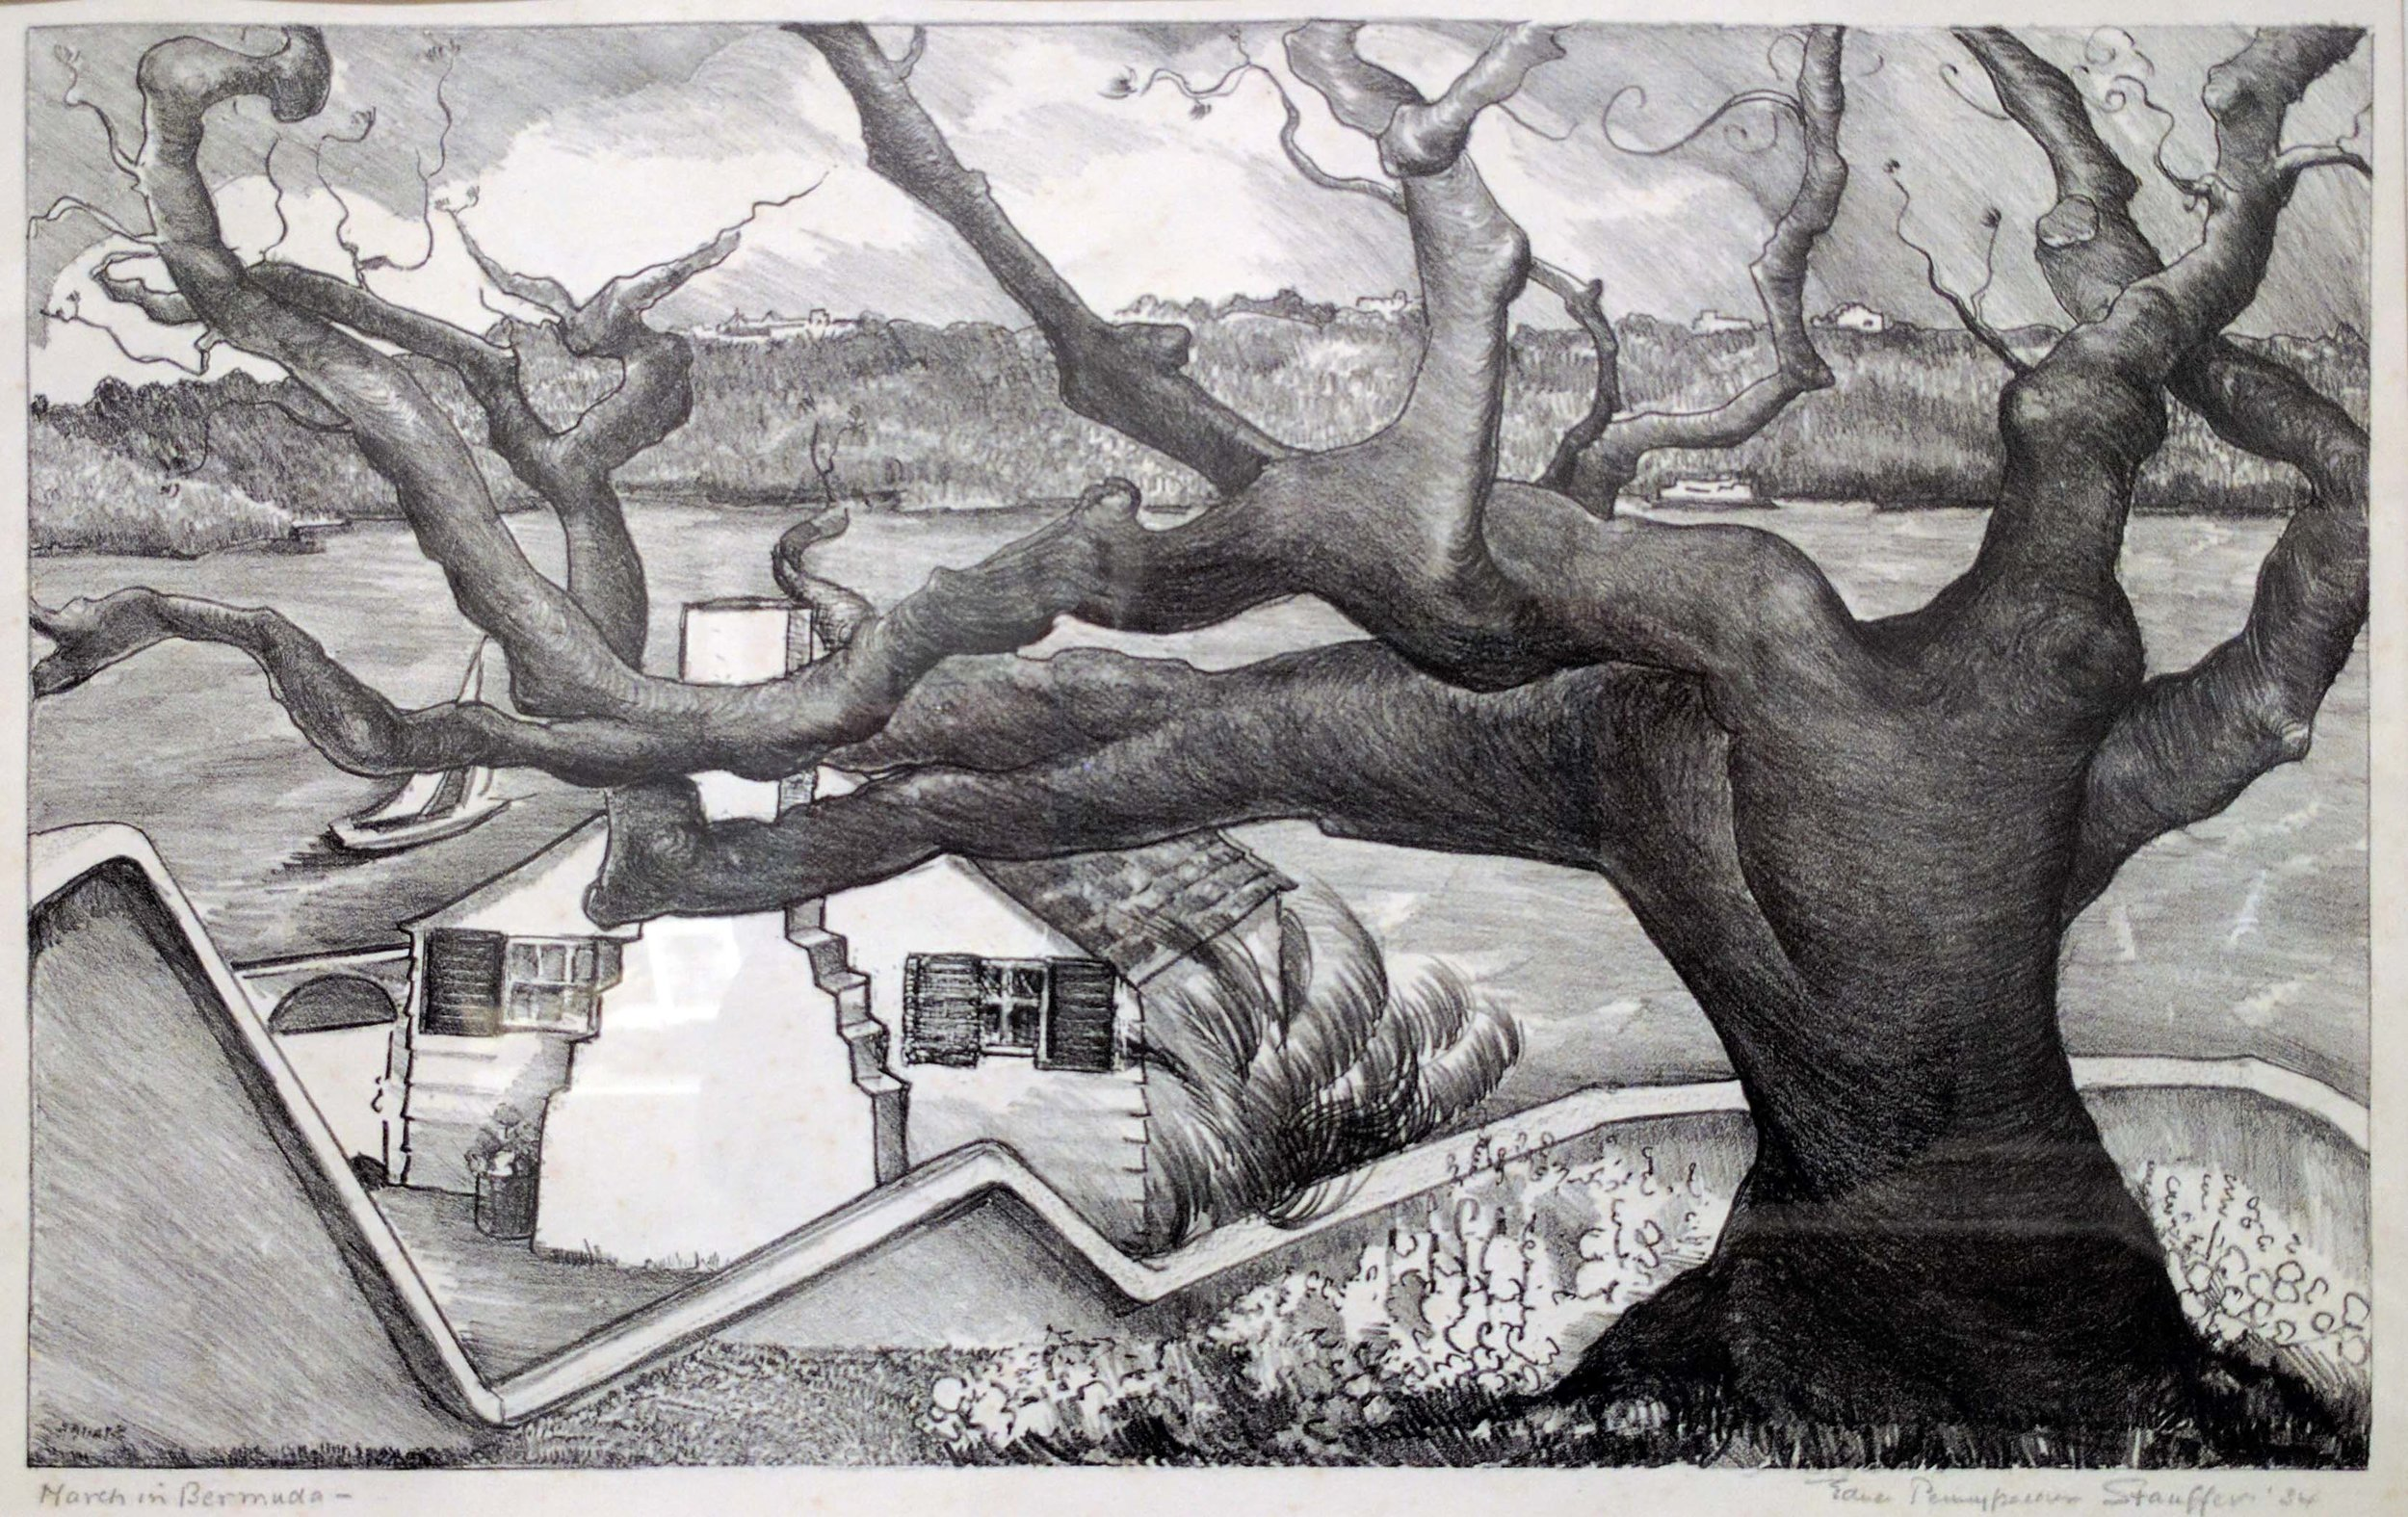 Drawing of a large tree with many branches. There is a house and field in the background.